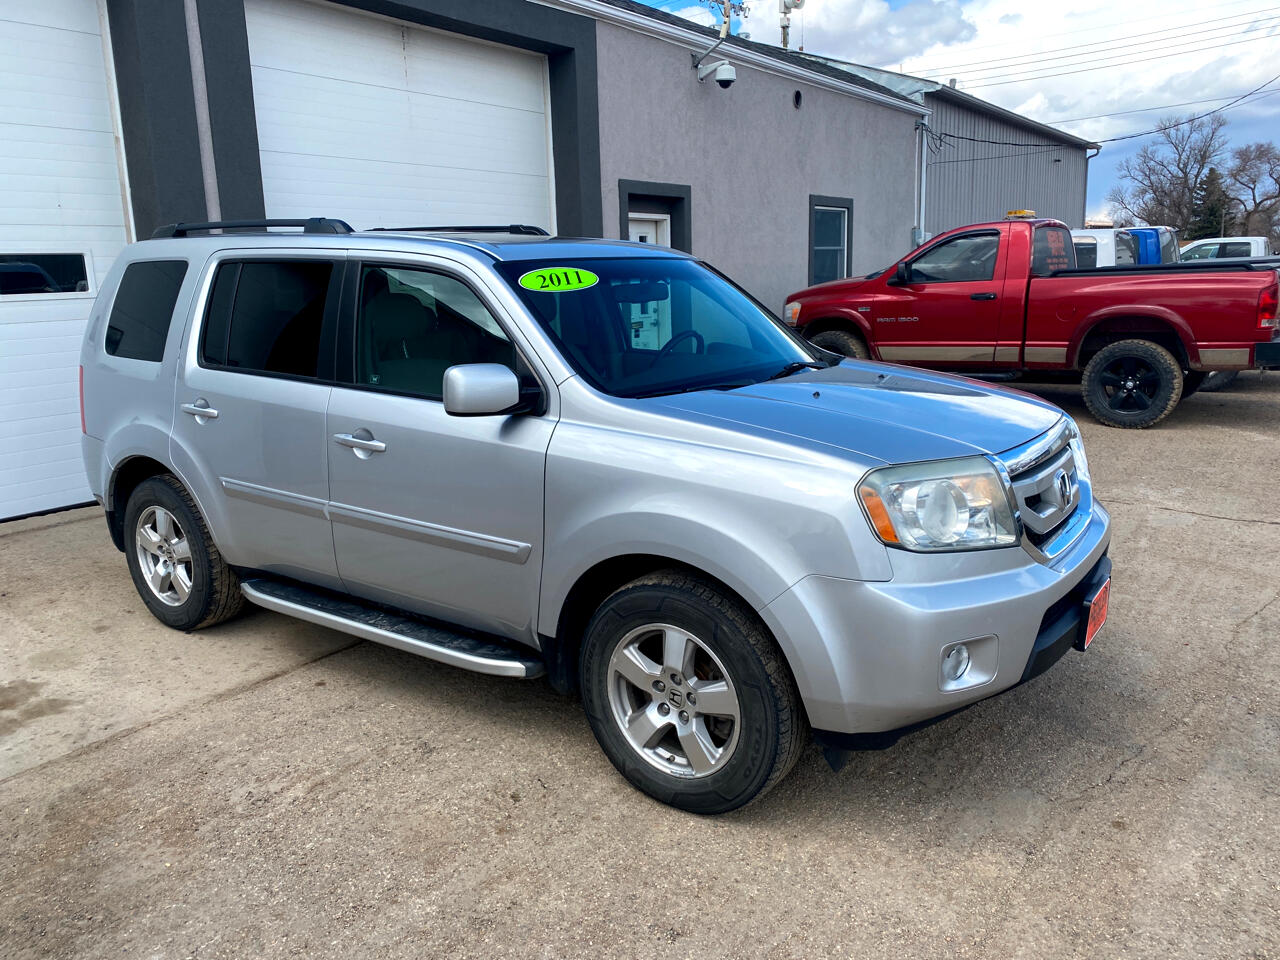 Honda Pilot 2011 for Sale in Mohall, ND